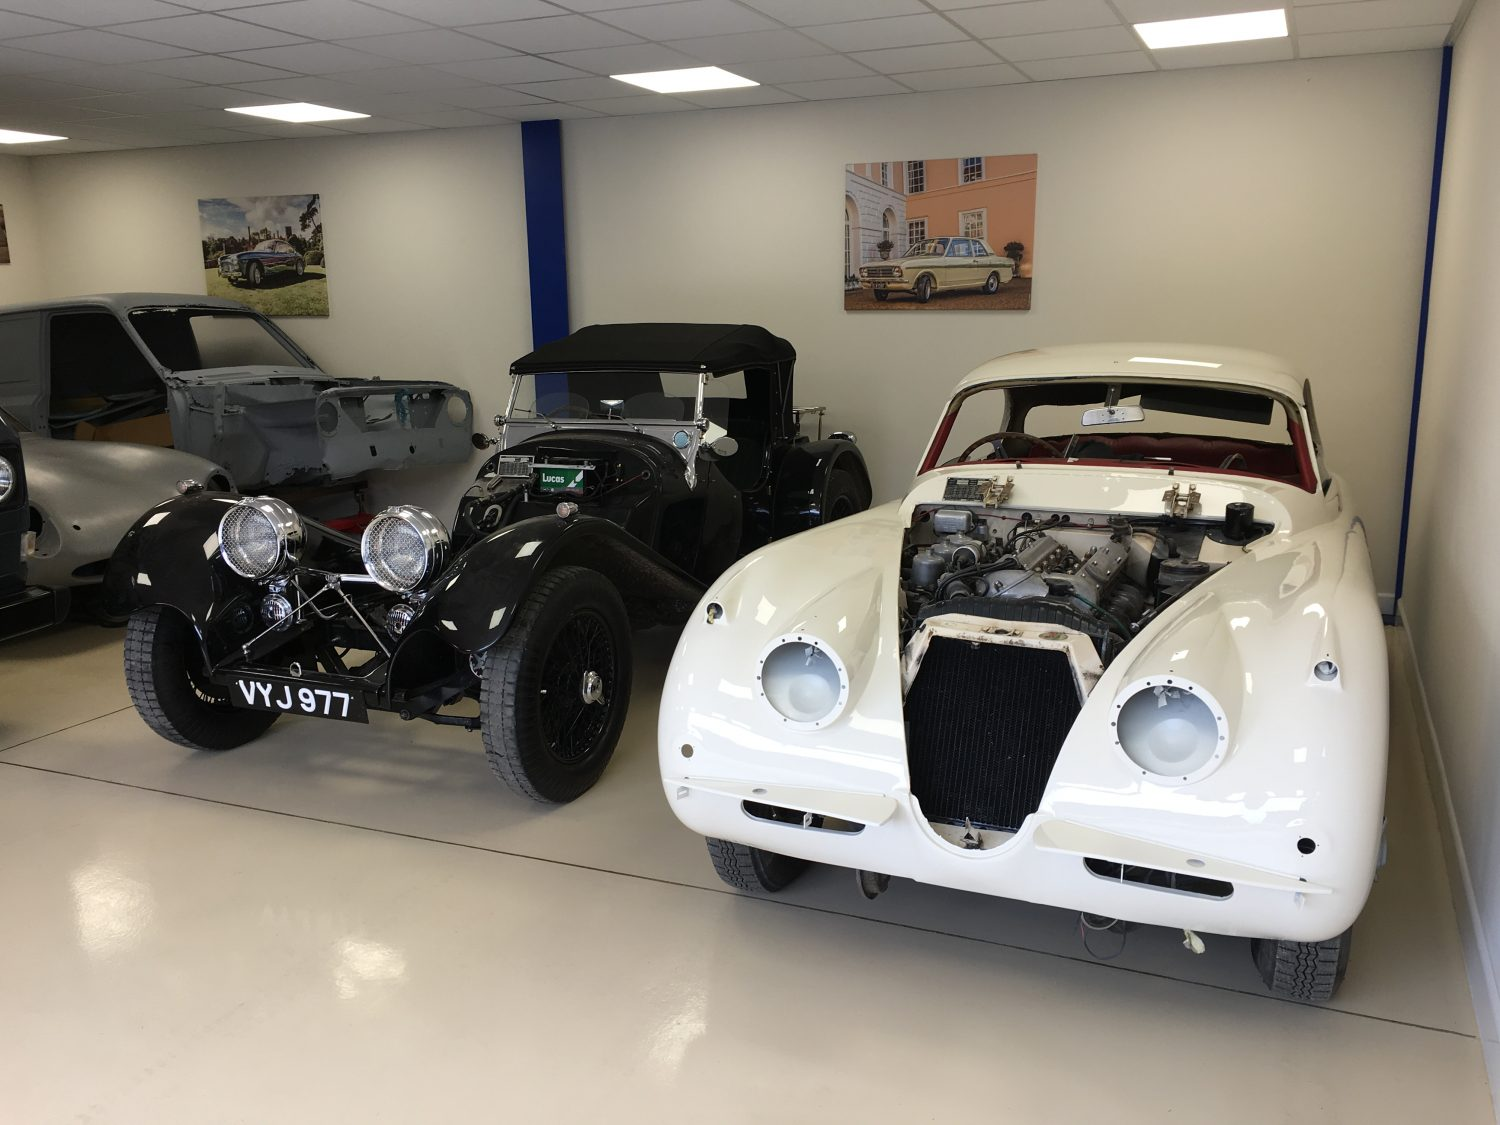 1961 Jaguar XK150 ready for refit